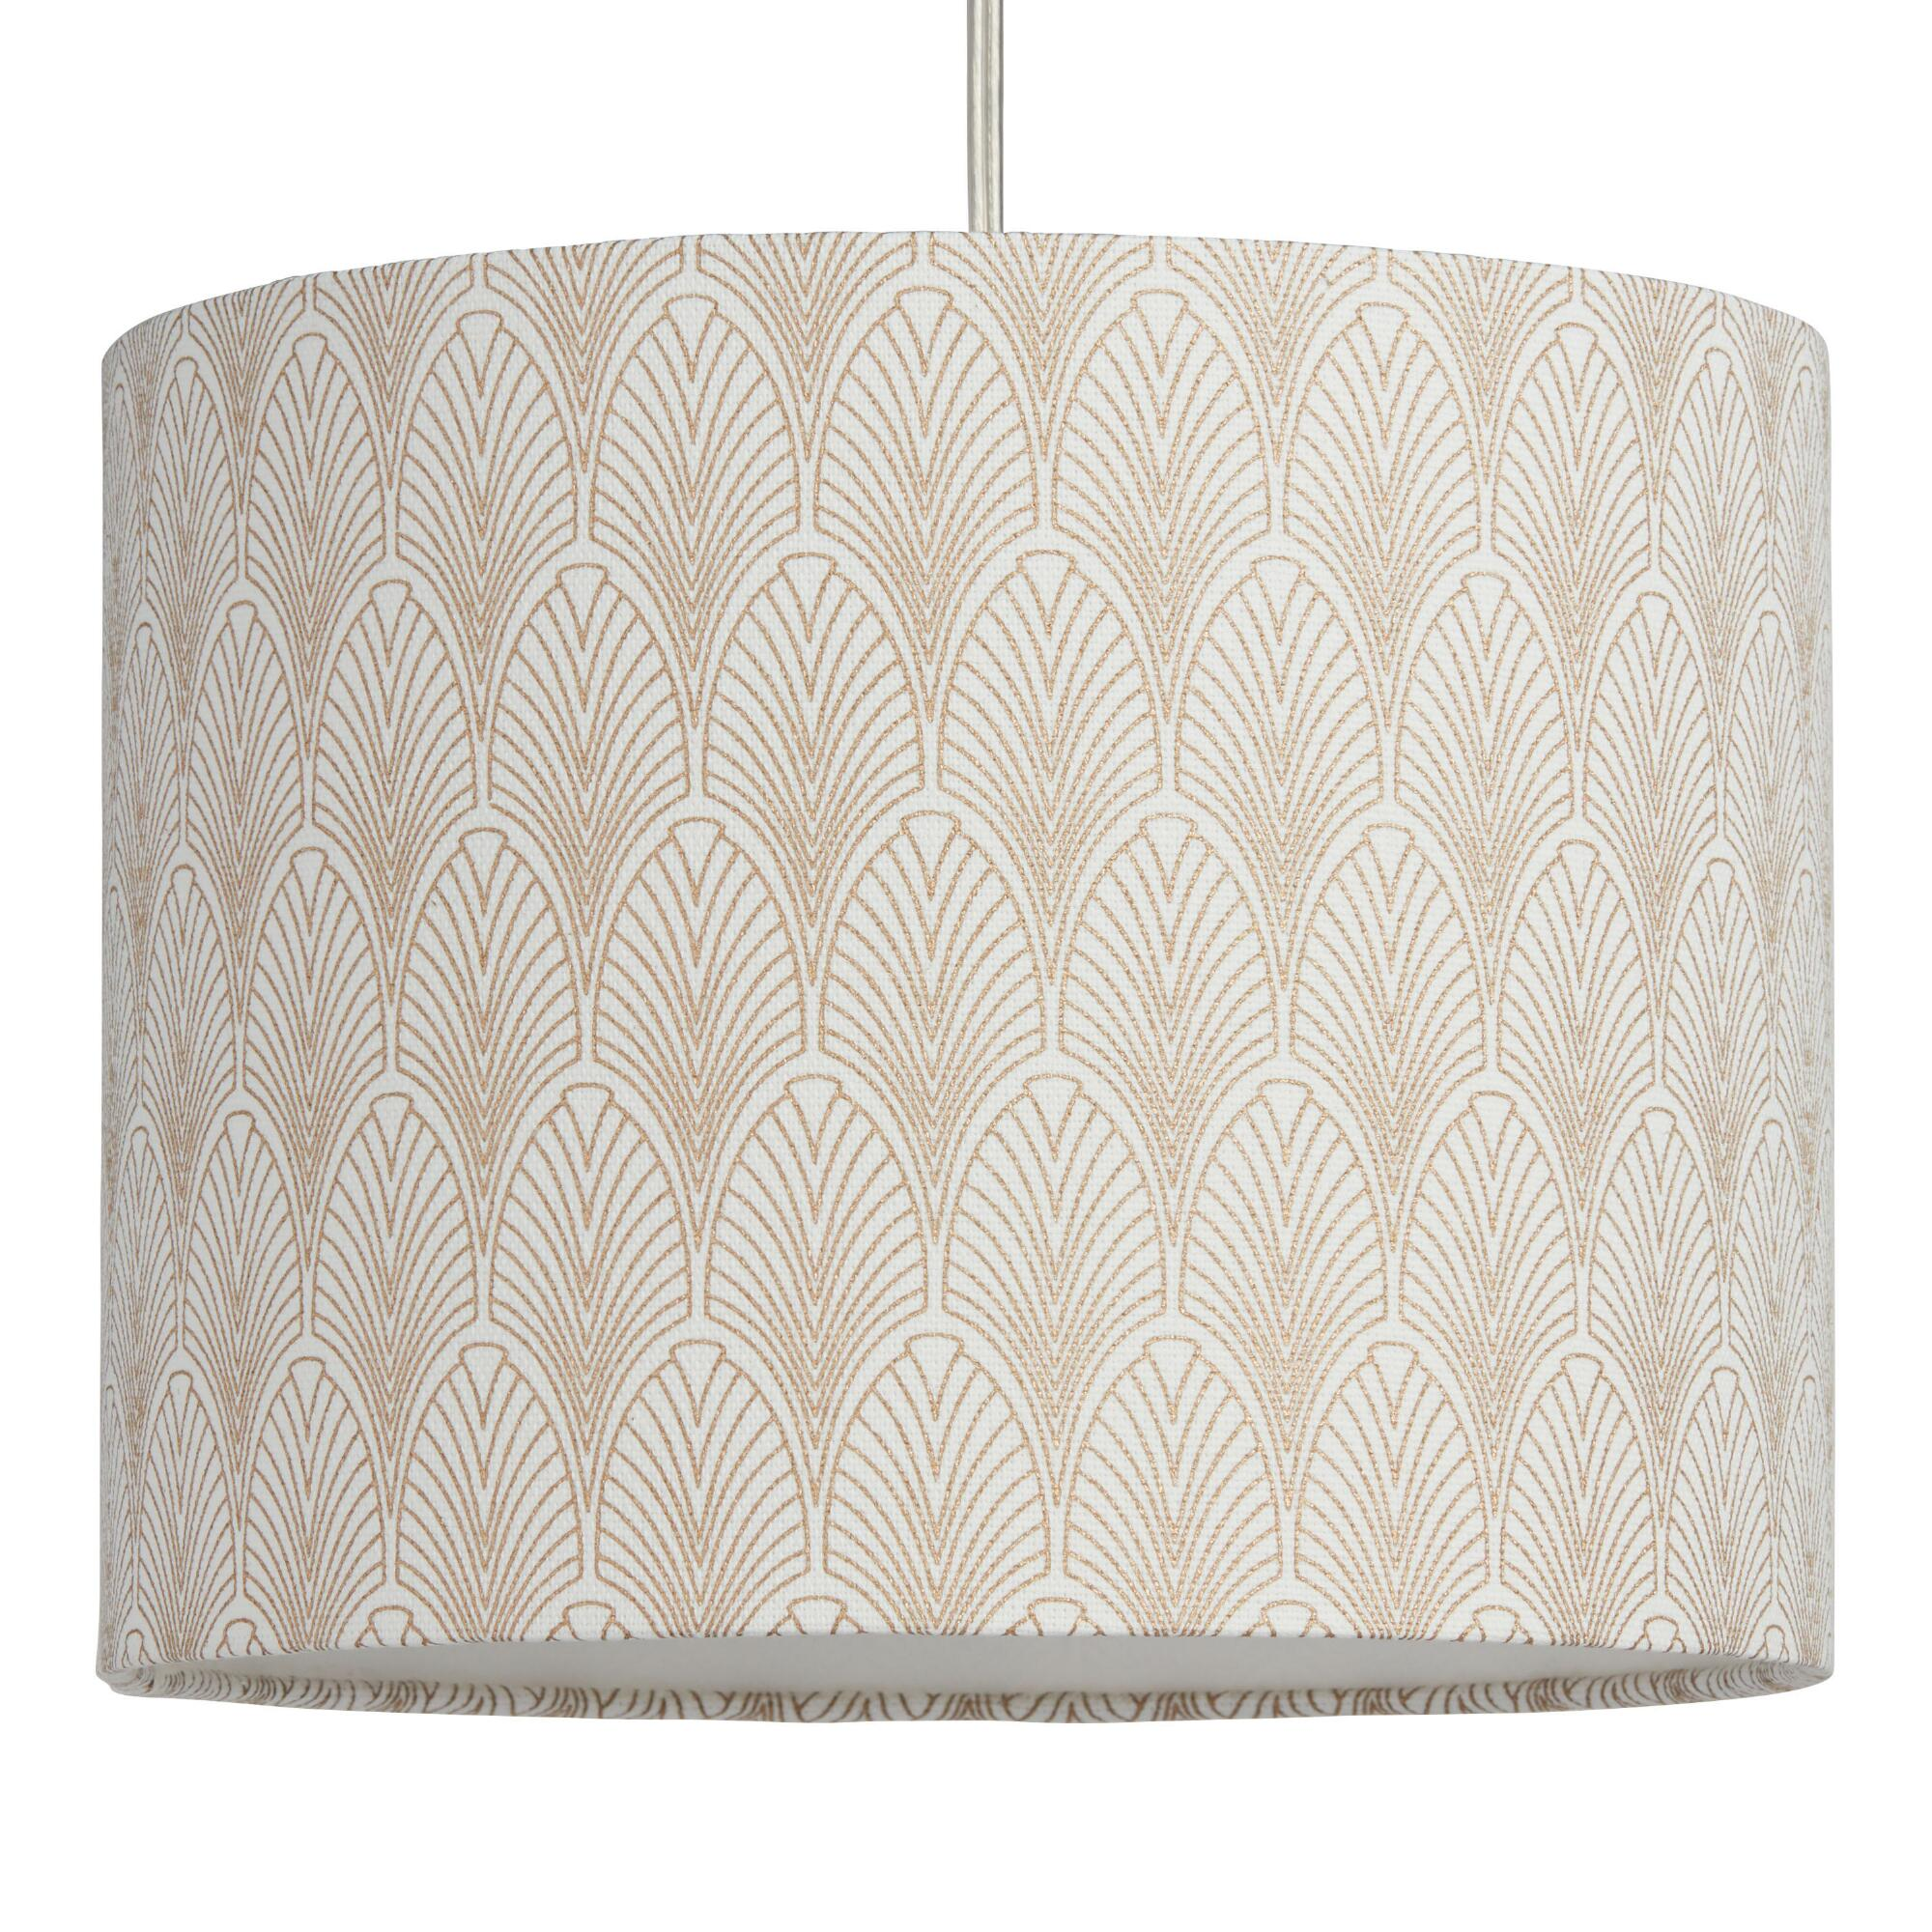 Lampshade wire rings australia rings bands lampshade wire rings australia jewelry greentooth Images